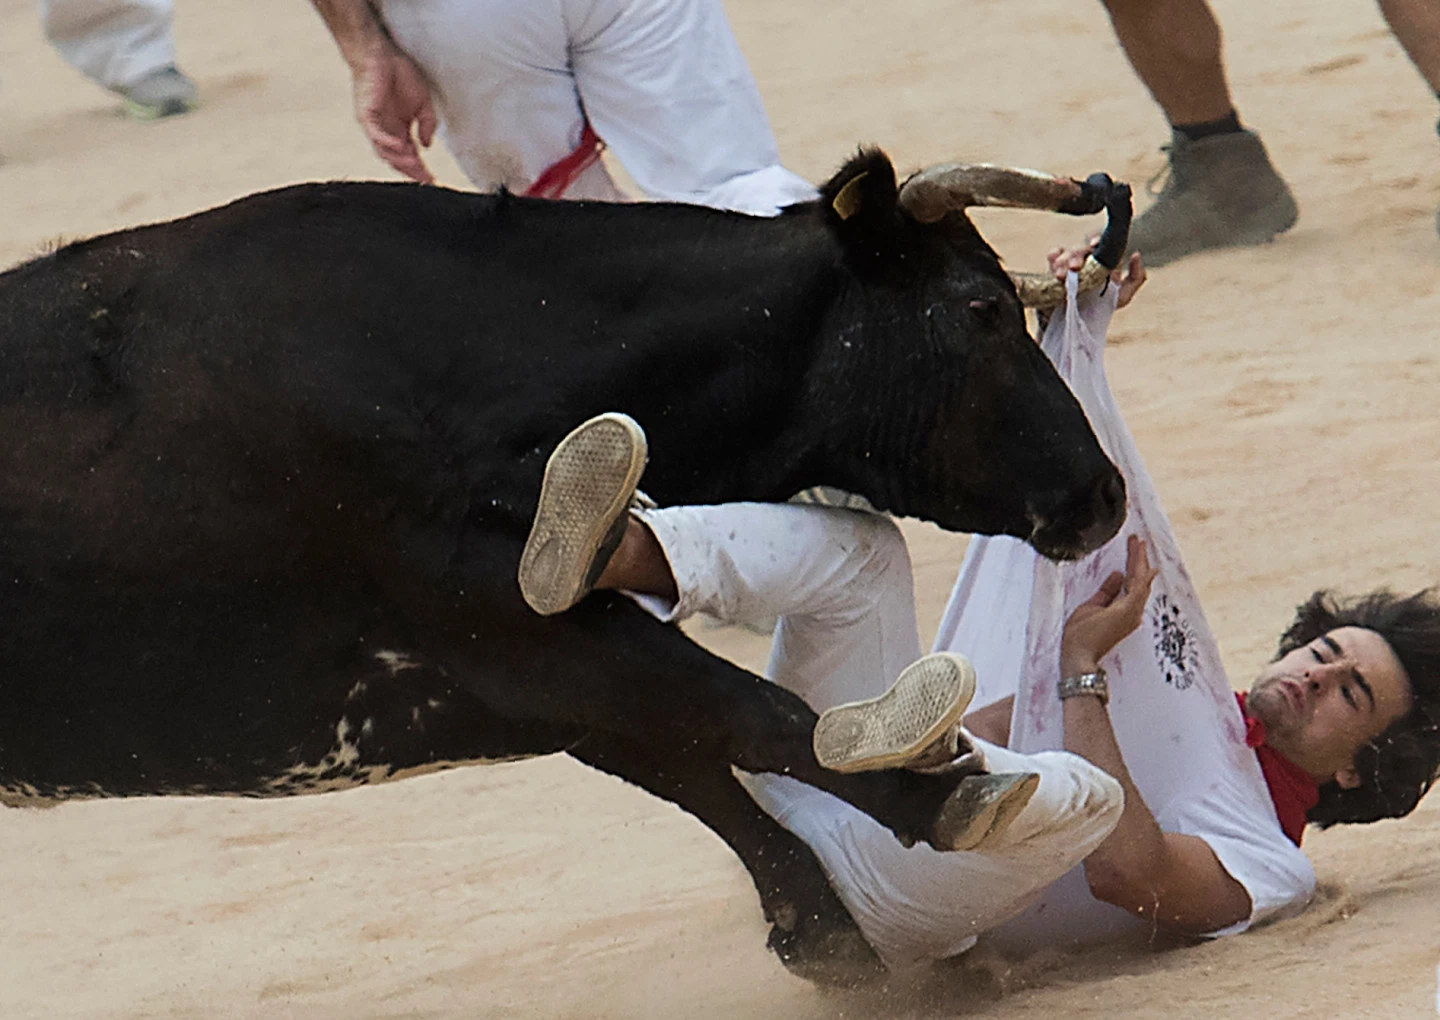 A man is struck by one of the bulls. Credit: JAIME REINA/AFP/Getty Images